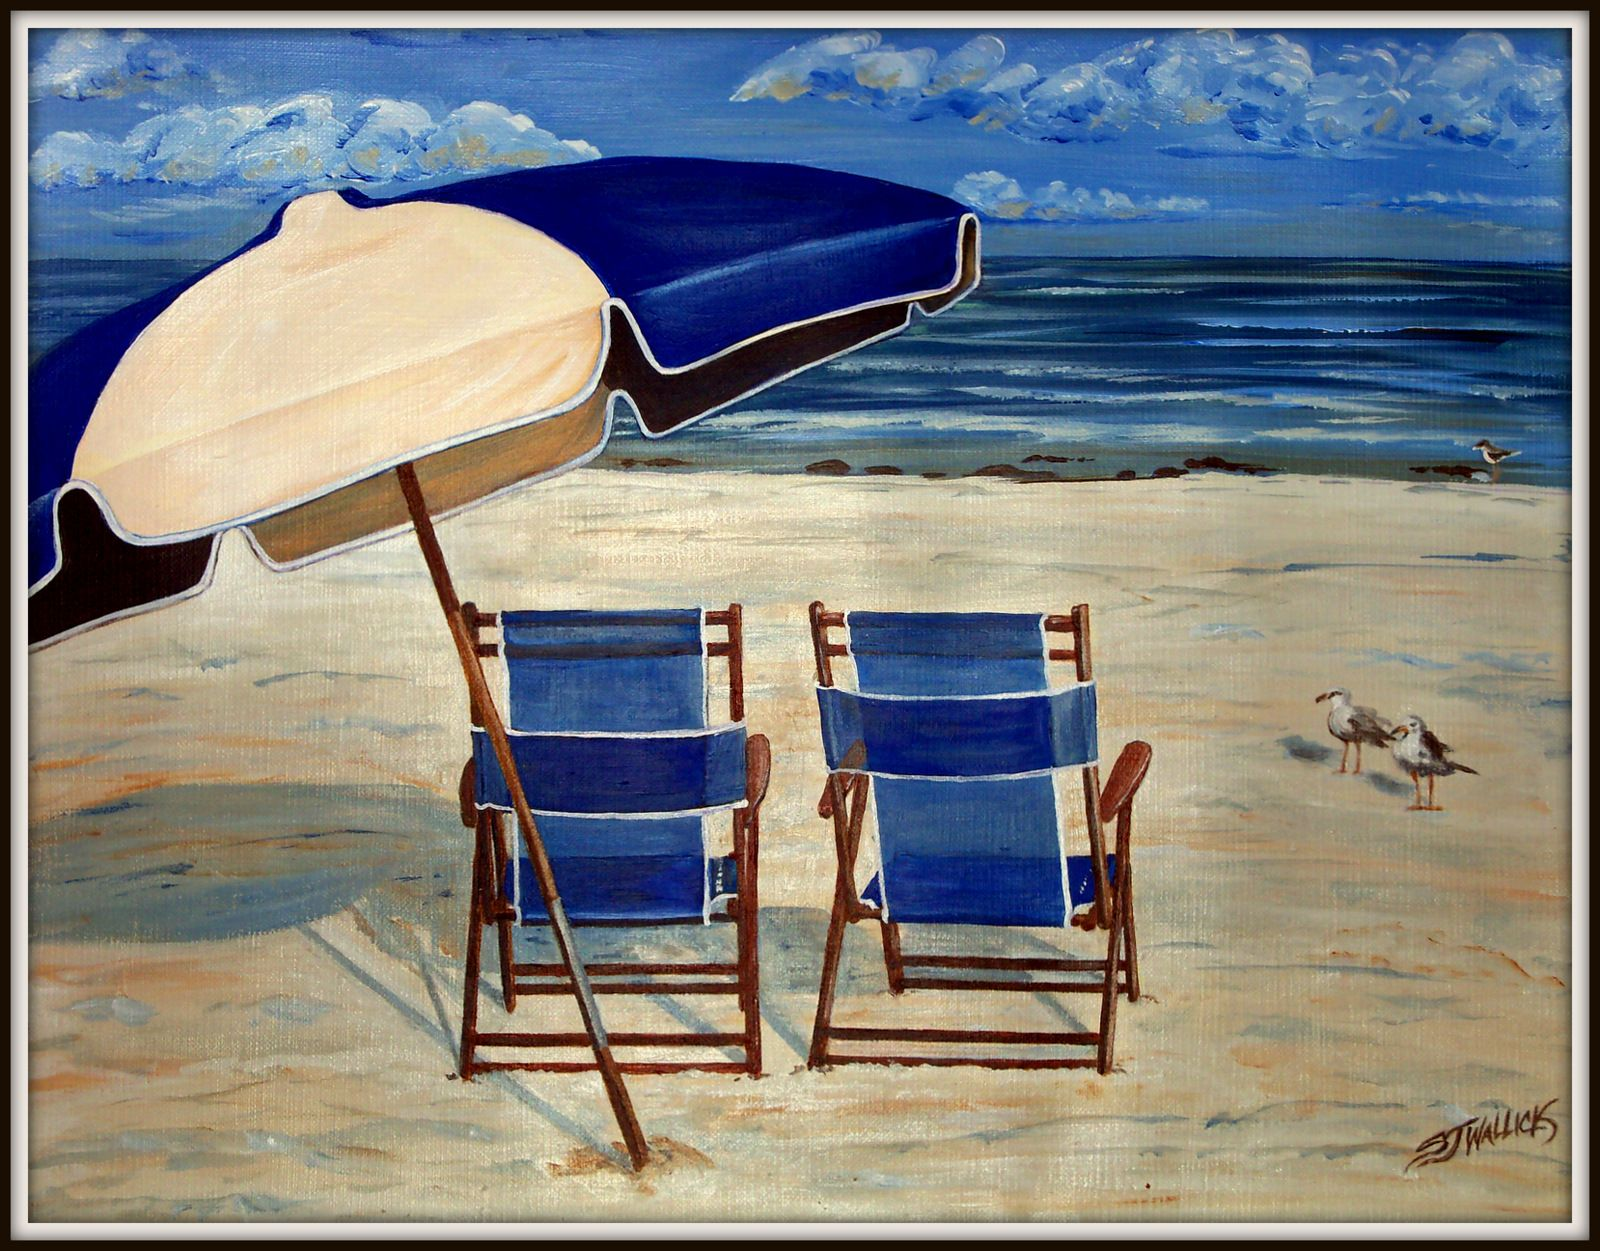 Beach chairs on the beach painting - Beach Chair With Umbrella Painting